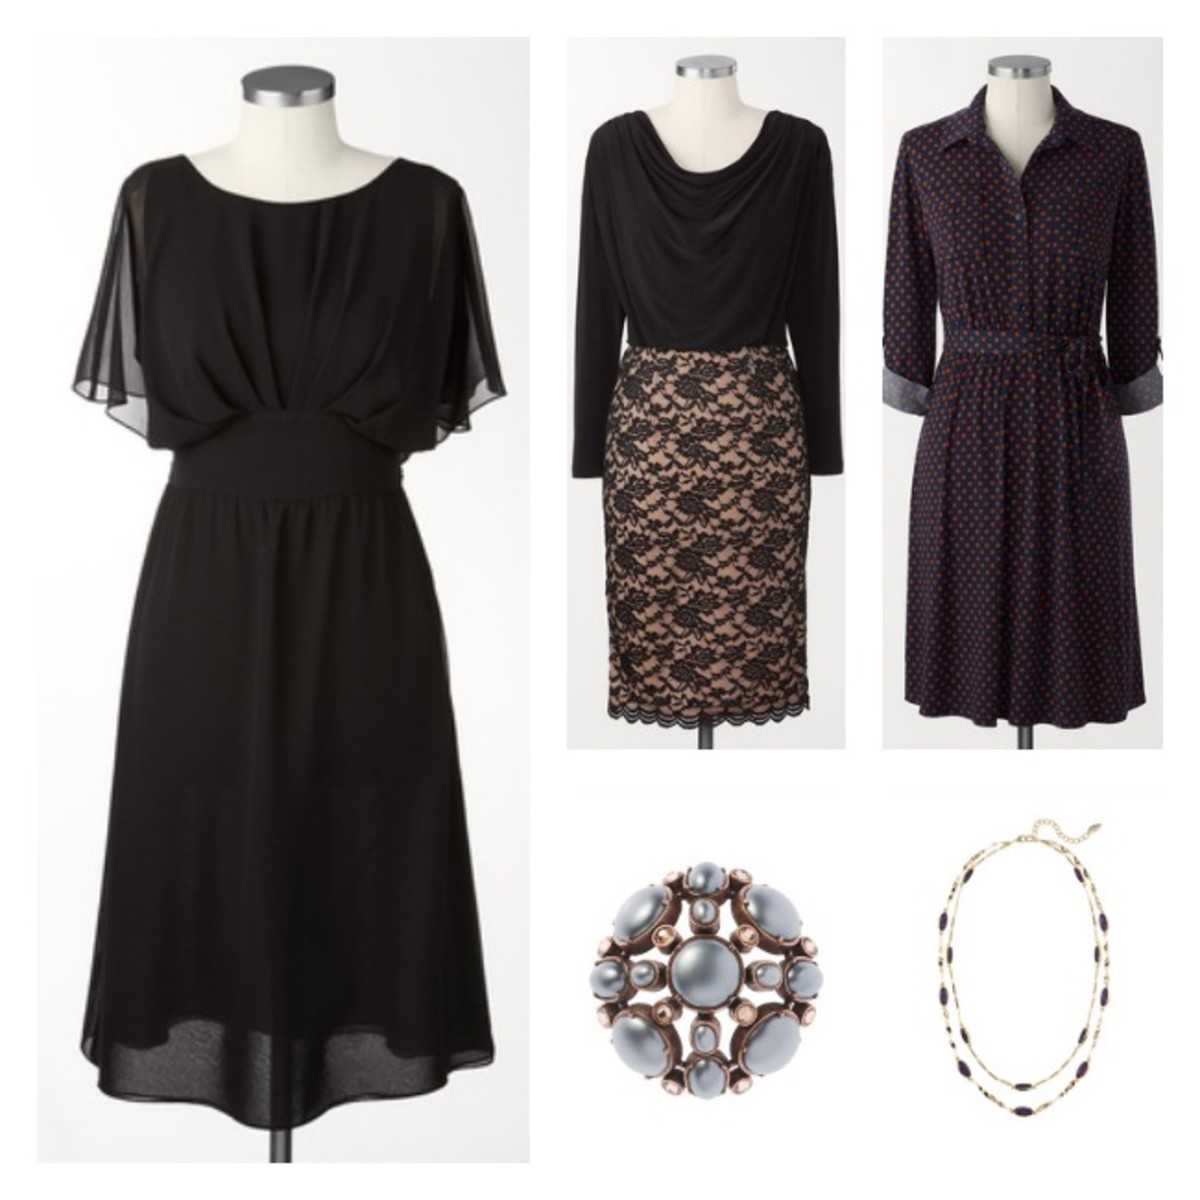 Dresses for the Holidays